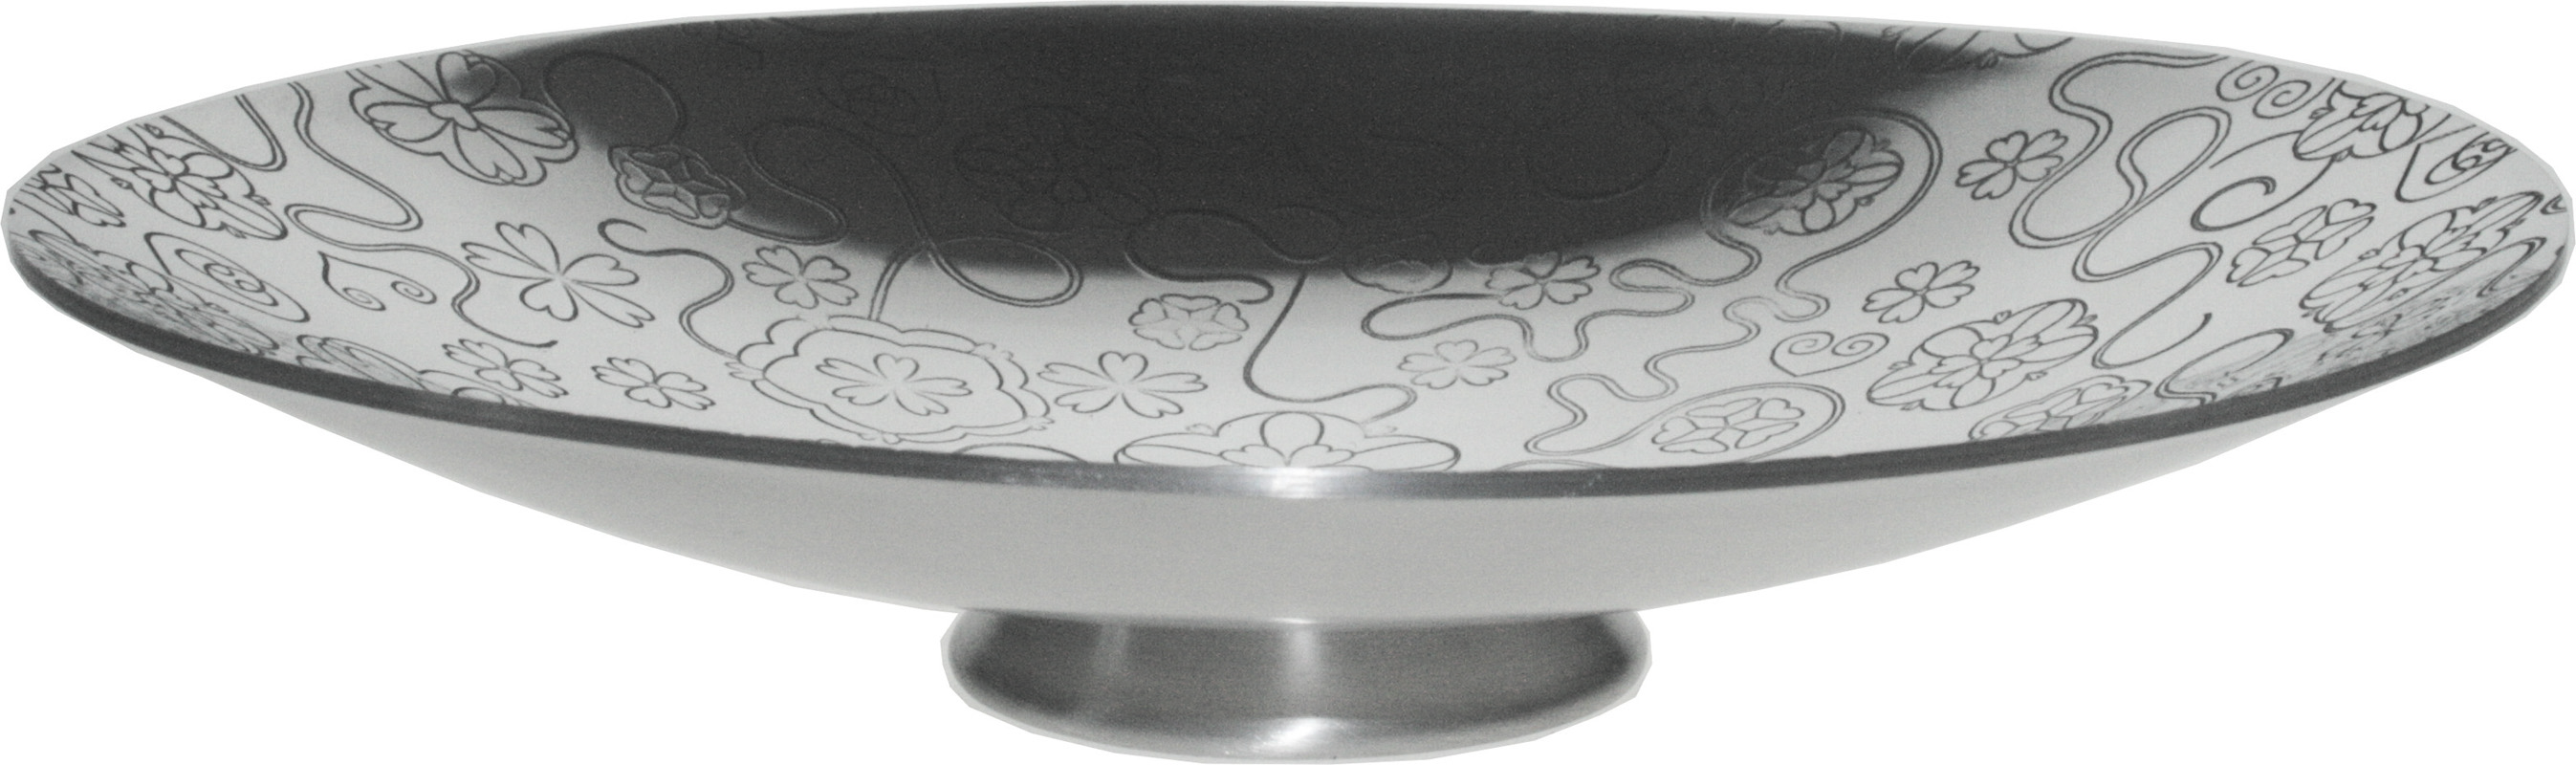 "Yorkshire Rose Pattern Pewter Bowl 20.5cm (8"")"